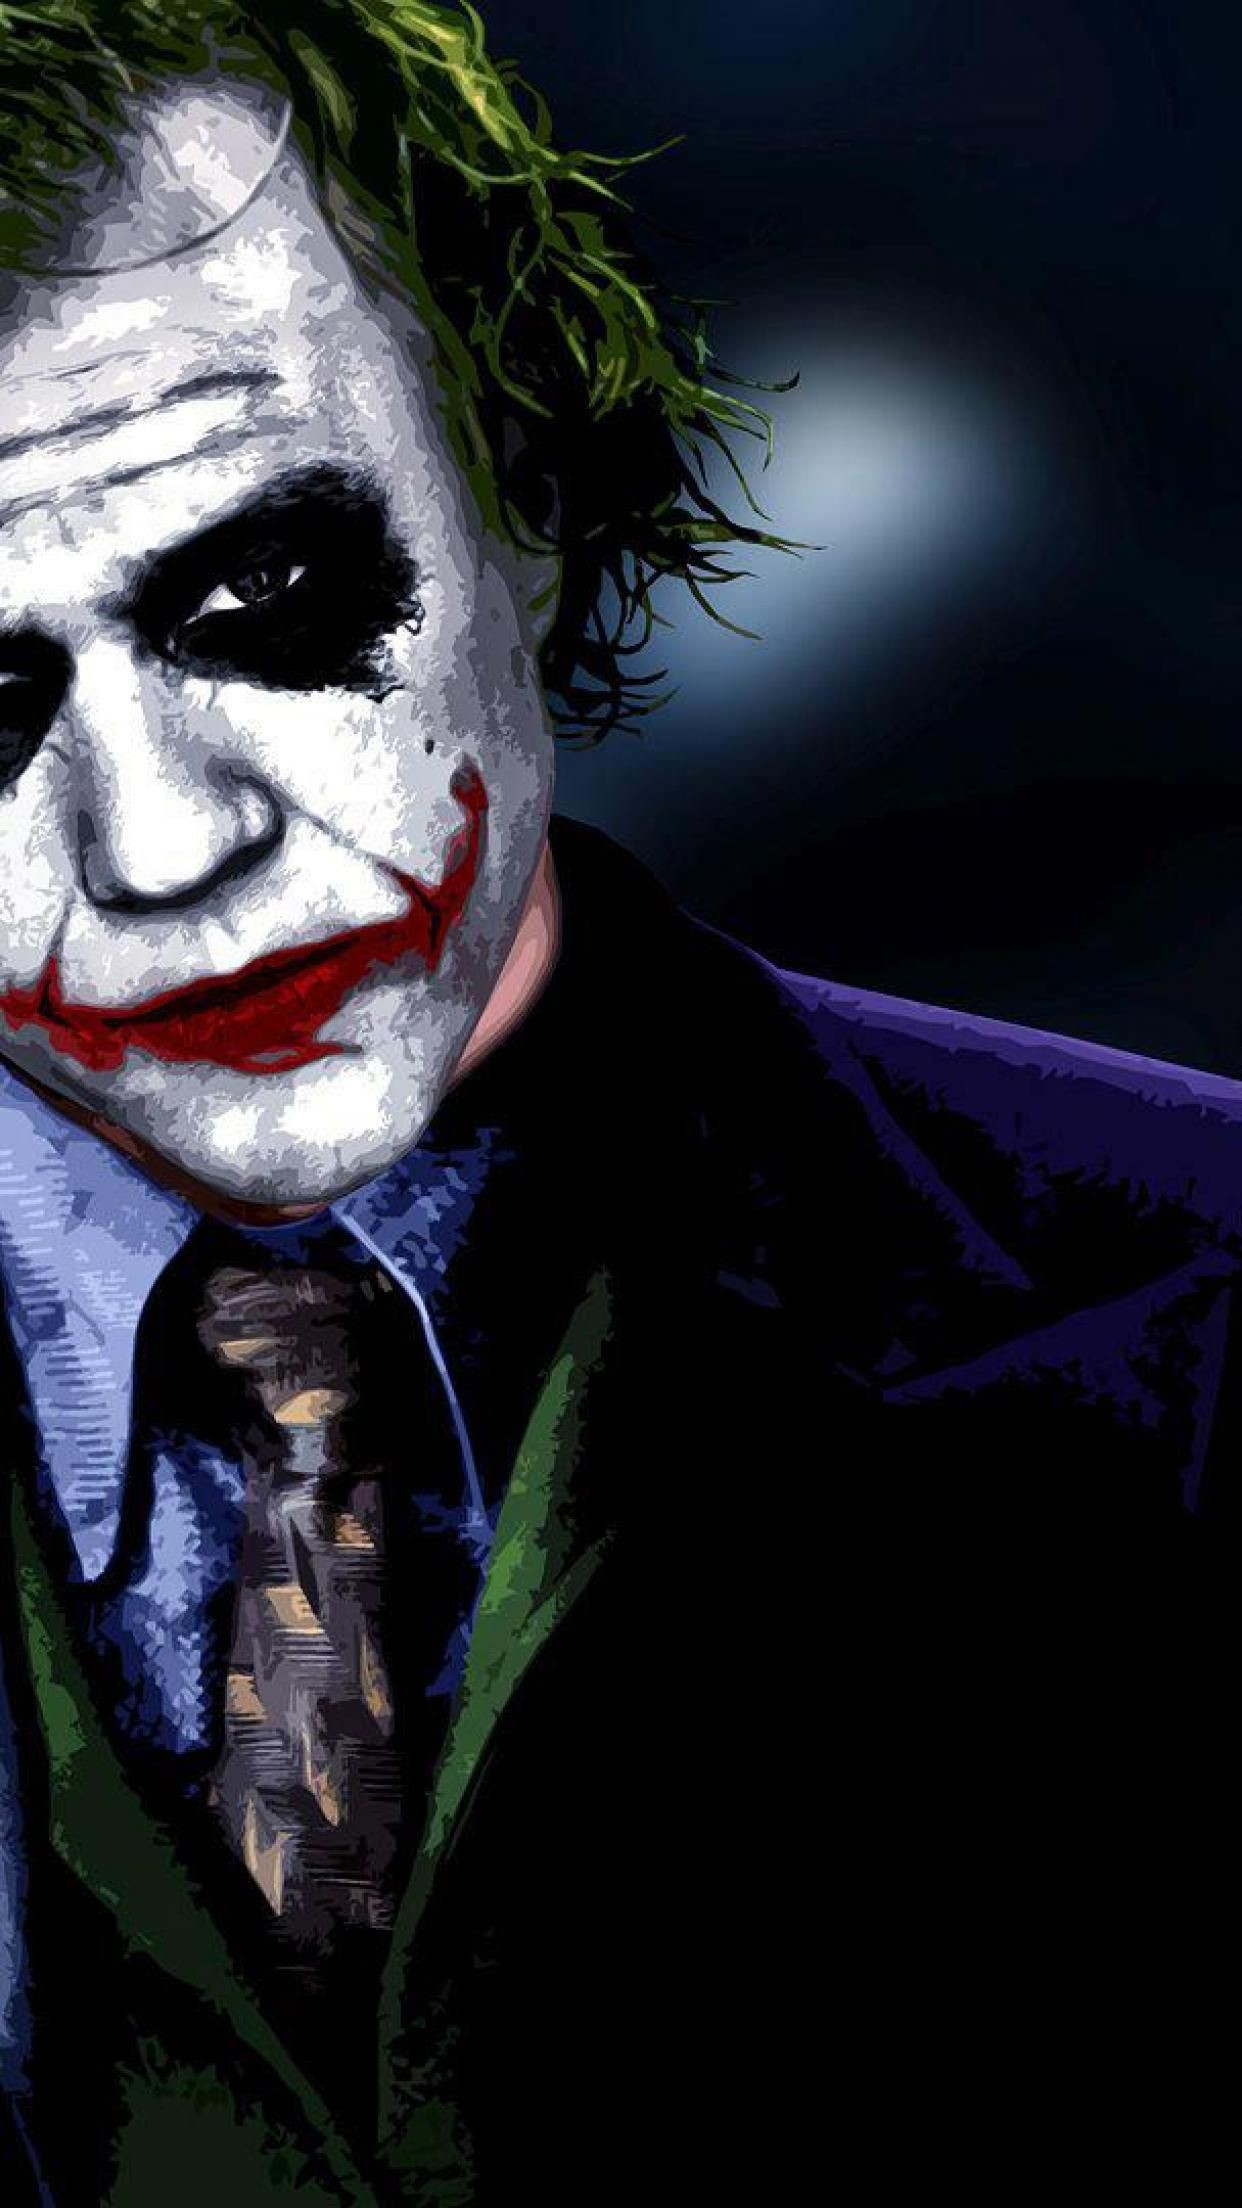 Hd Iphone Joker Wallpaper 75 Images